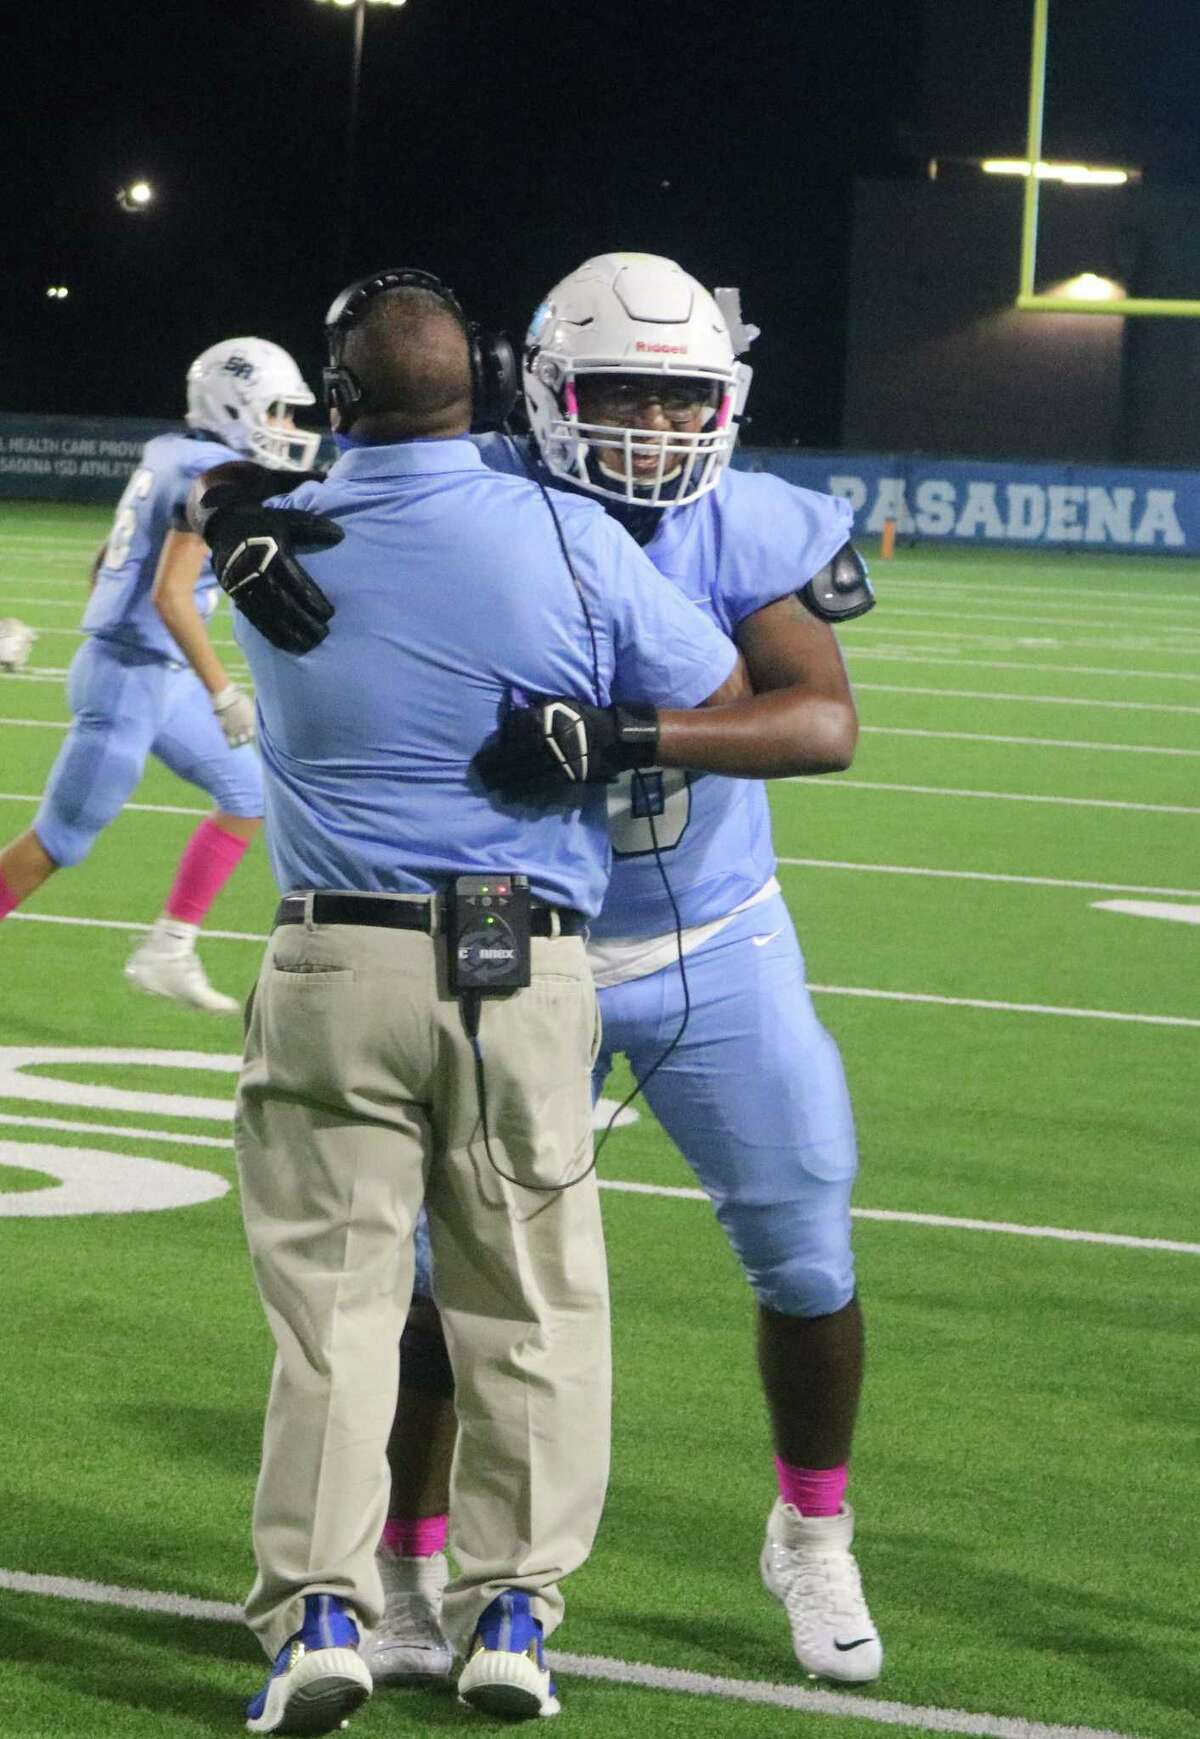 Sam Rayburn coaches and players embraced Saturday night, following the team's 7-6 win over Milby, ending a 29-game losing streak that had dated back to the 2017 season.